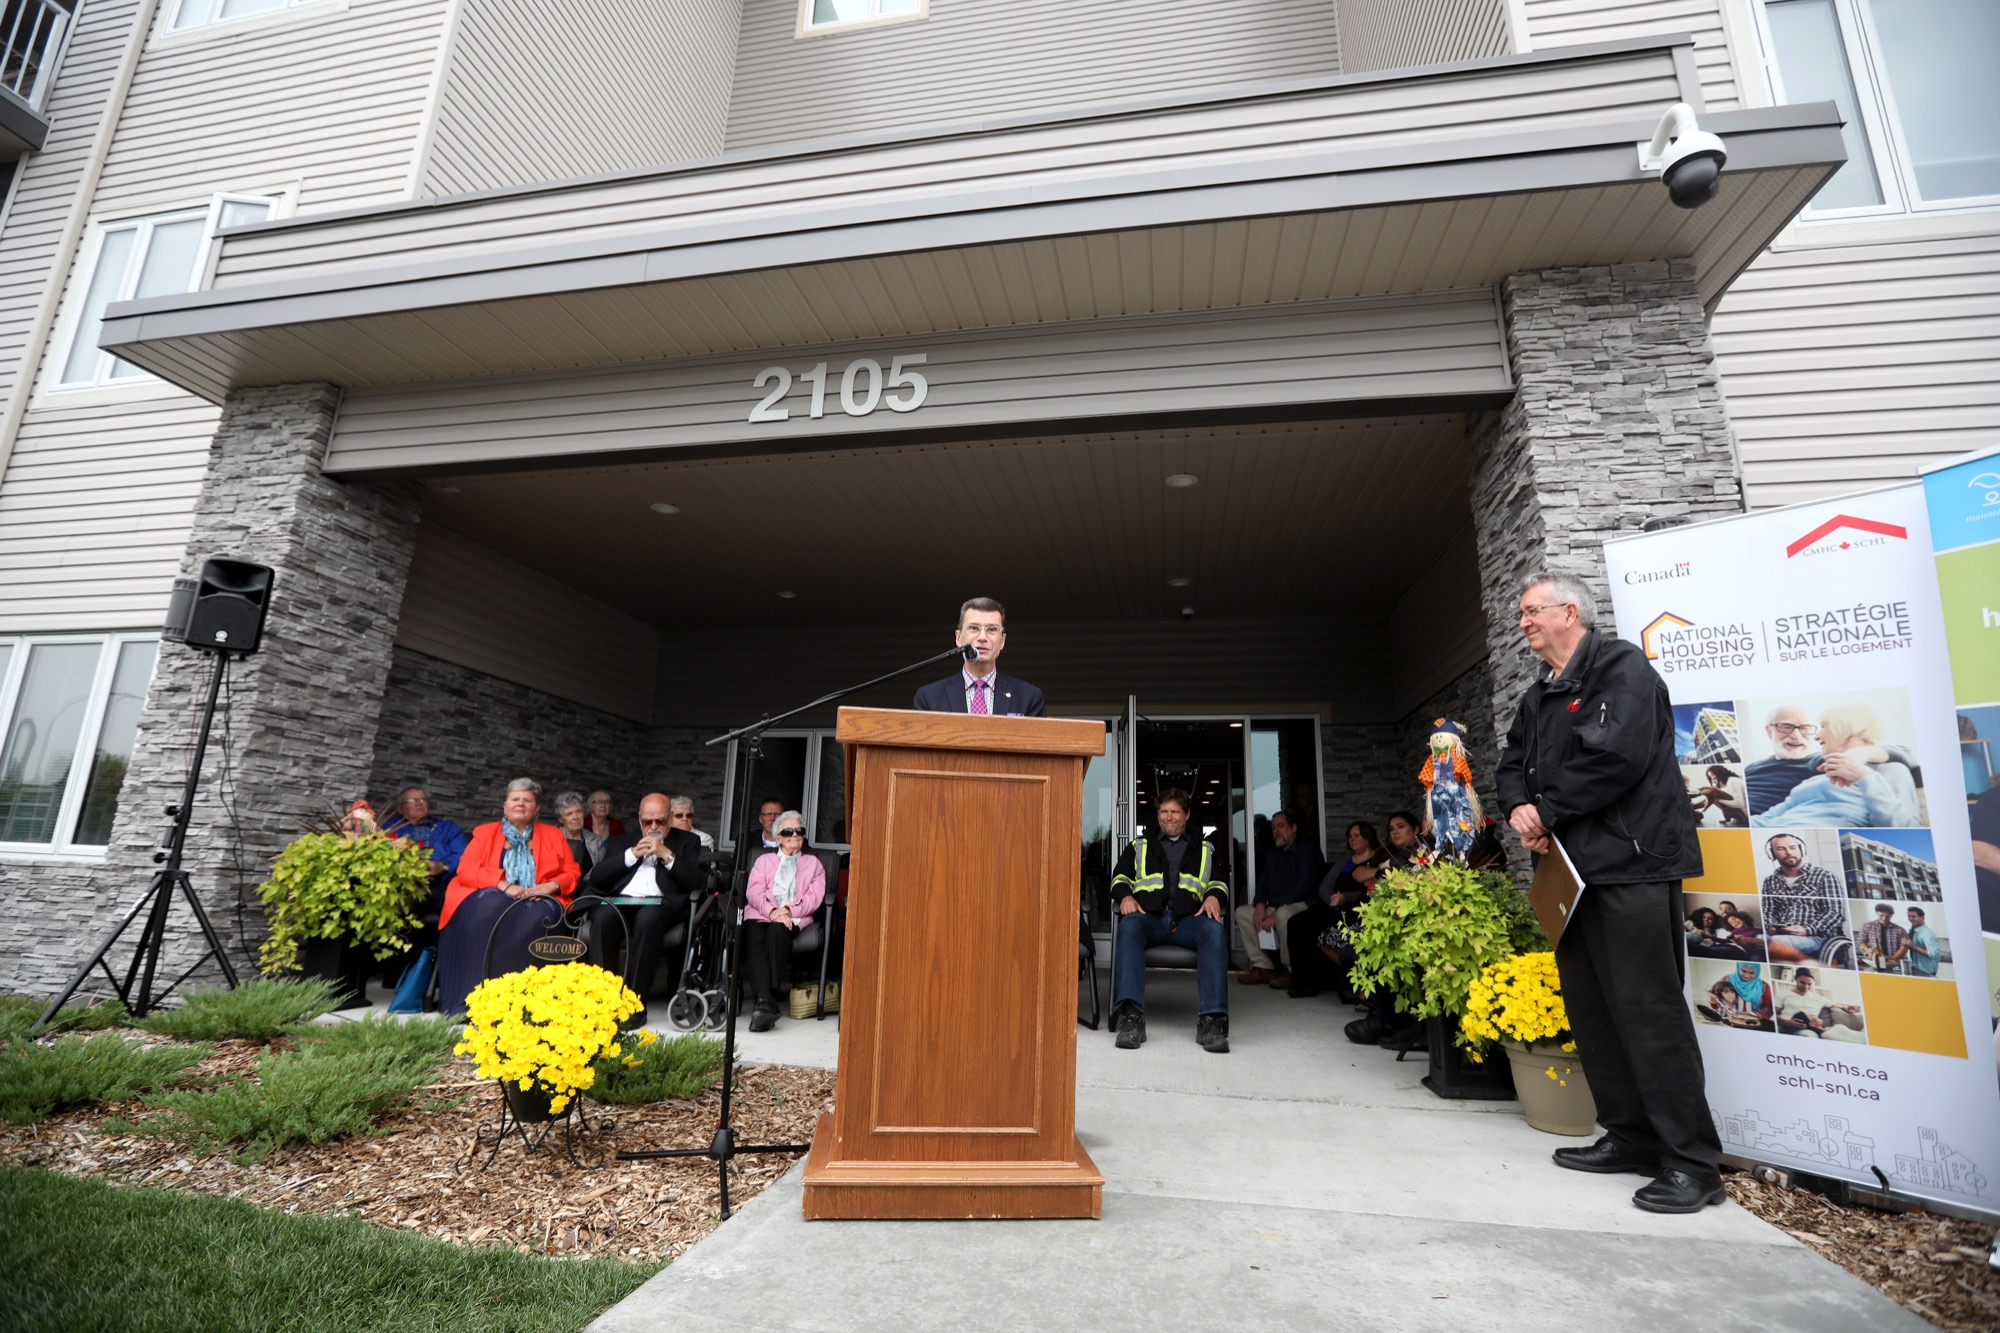 Charleswood-St James-Assiniboia-Headingley Liberal MP Doug Eyolfson speaks on behalf of federal Families, Children and Social Development Minister Jean-Yves Duclos during the unveiling of the Western Manitoba Seniors Non-Profit Housing Co-op seniors housing complex on Brandon Avenue on Tuesday.